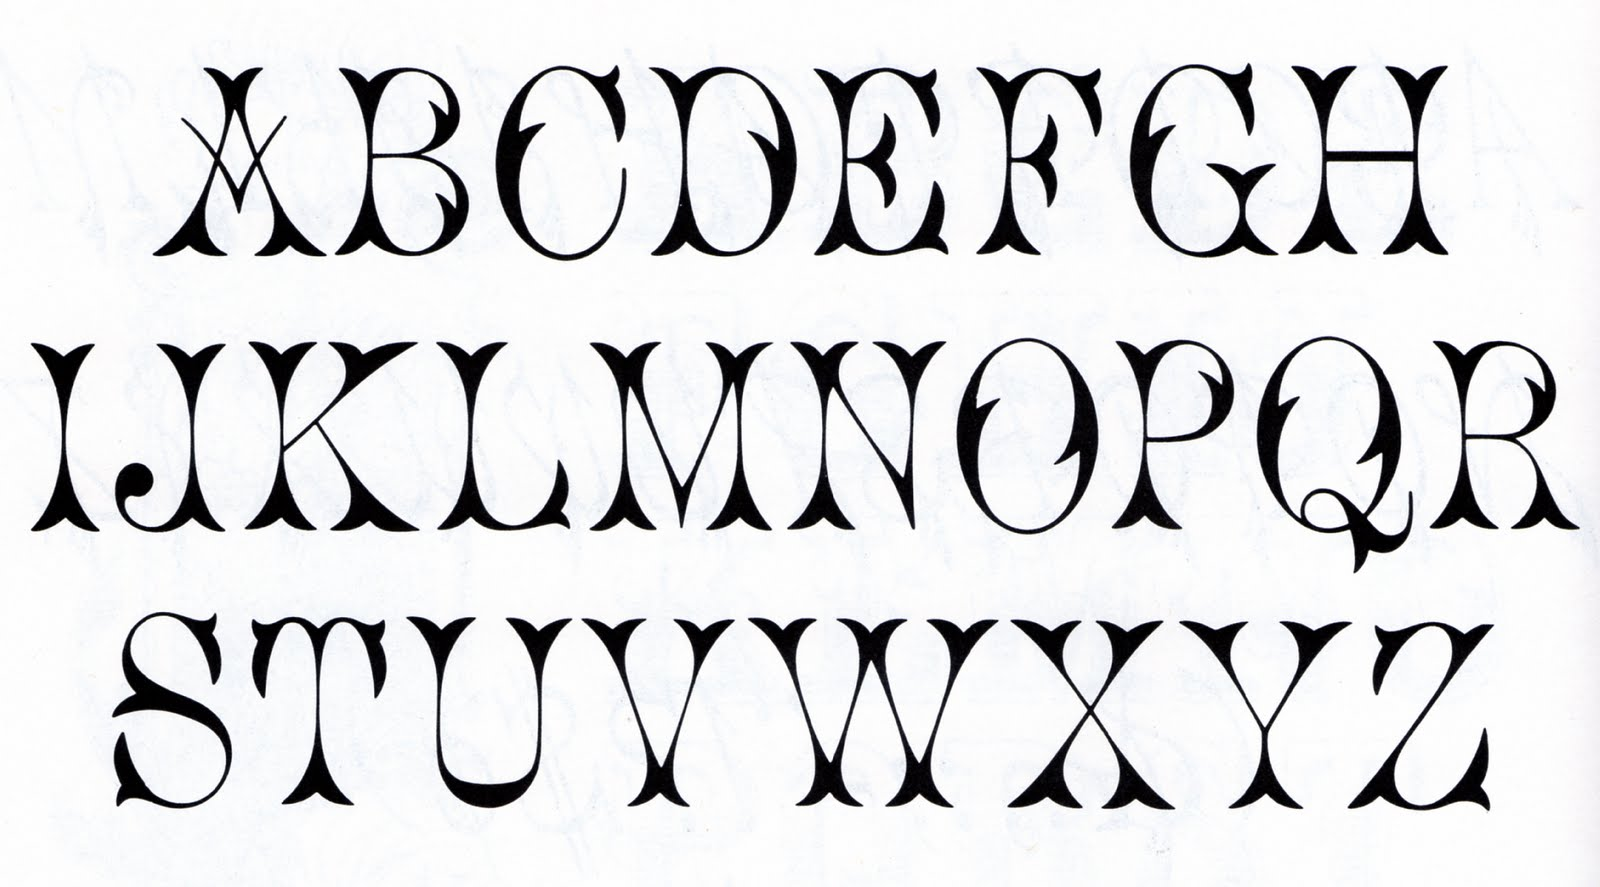 A Charming Font By Gemfonts  Fontspace  Tipografas